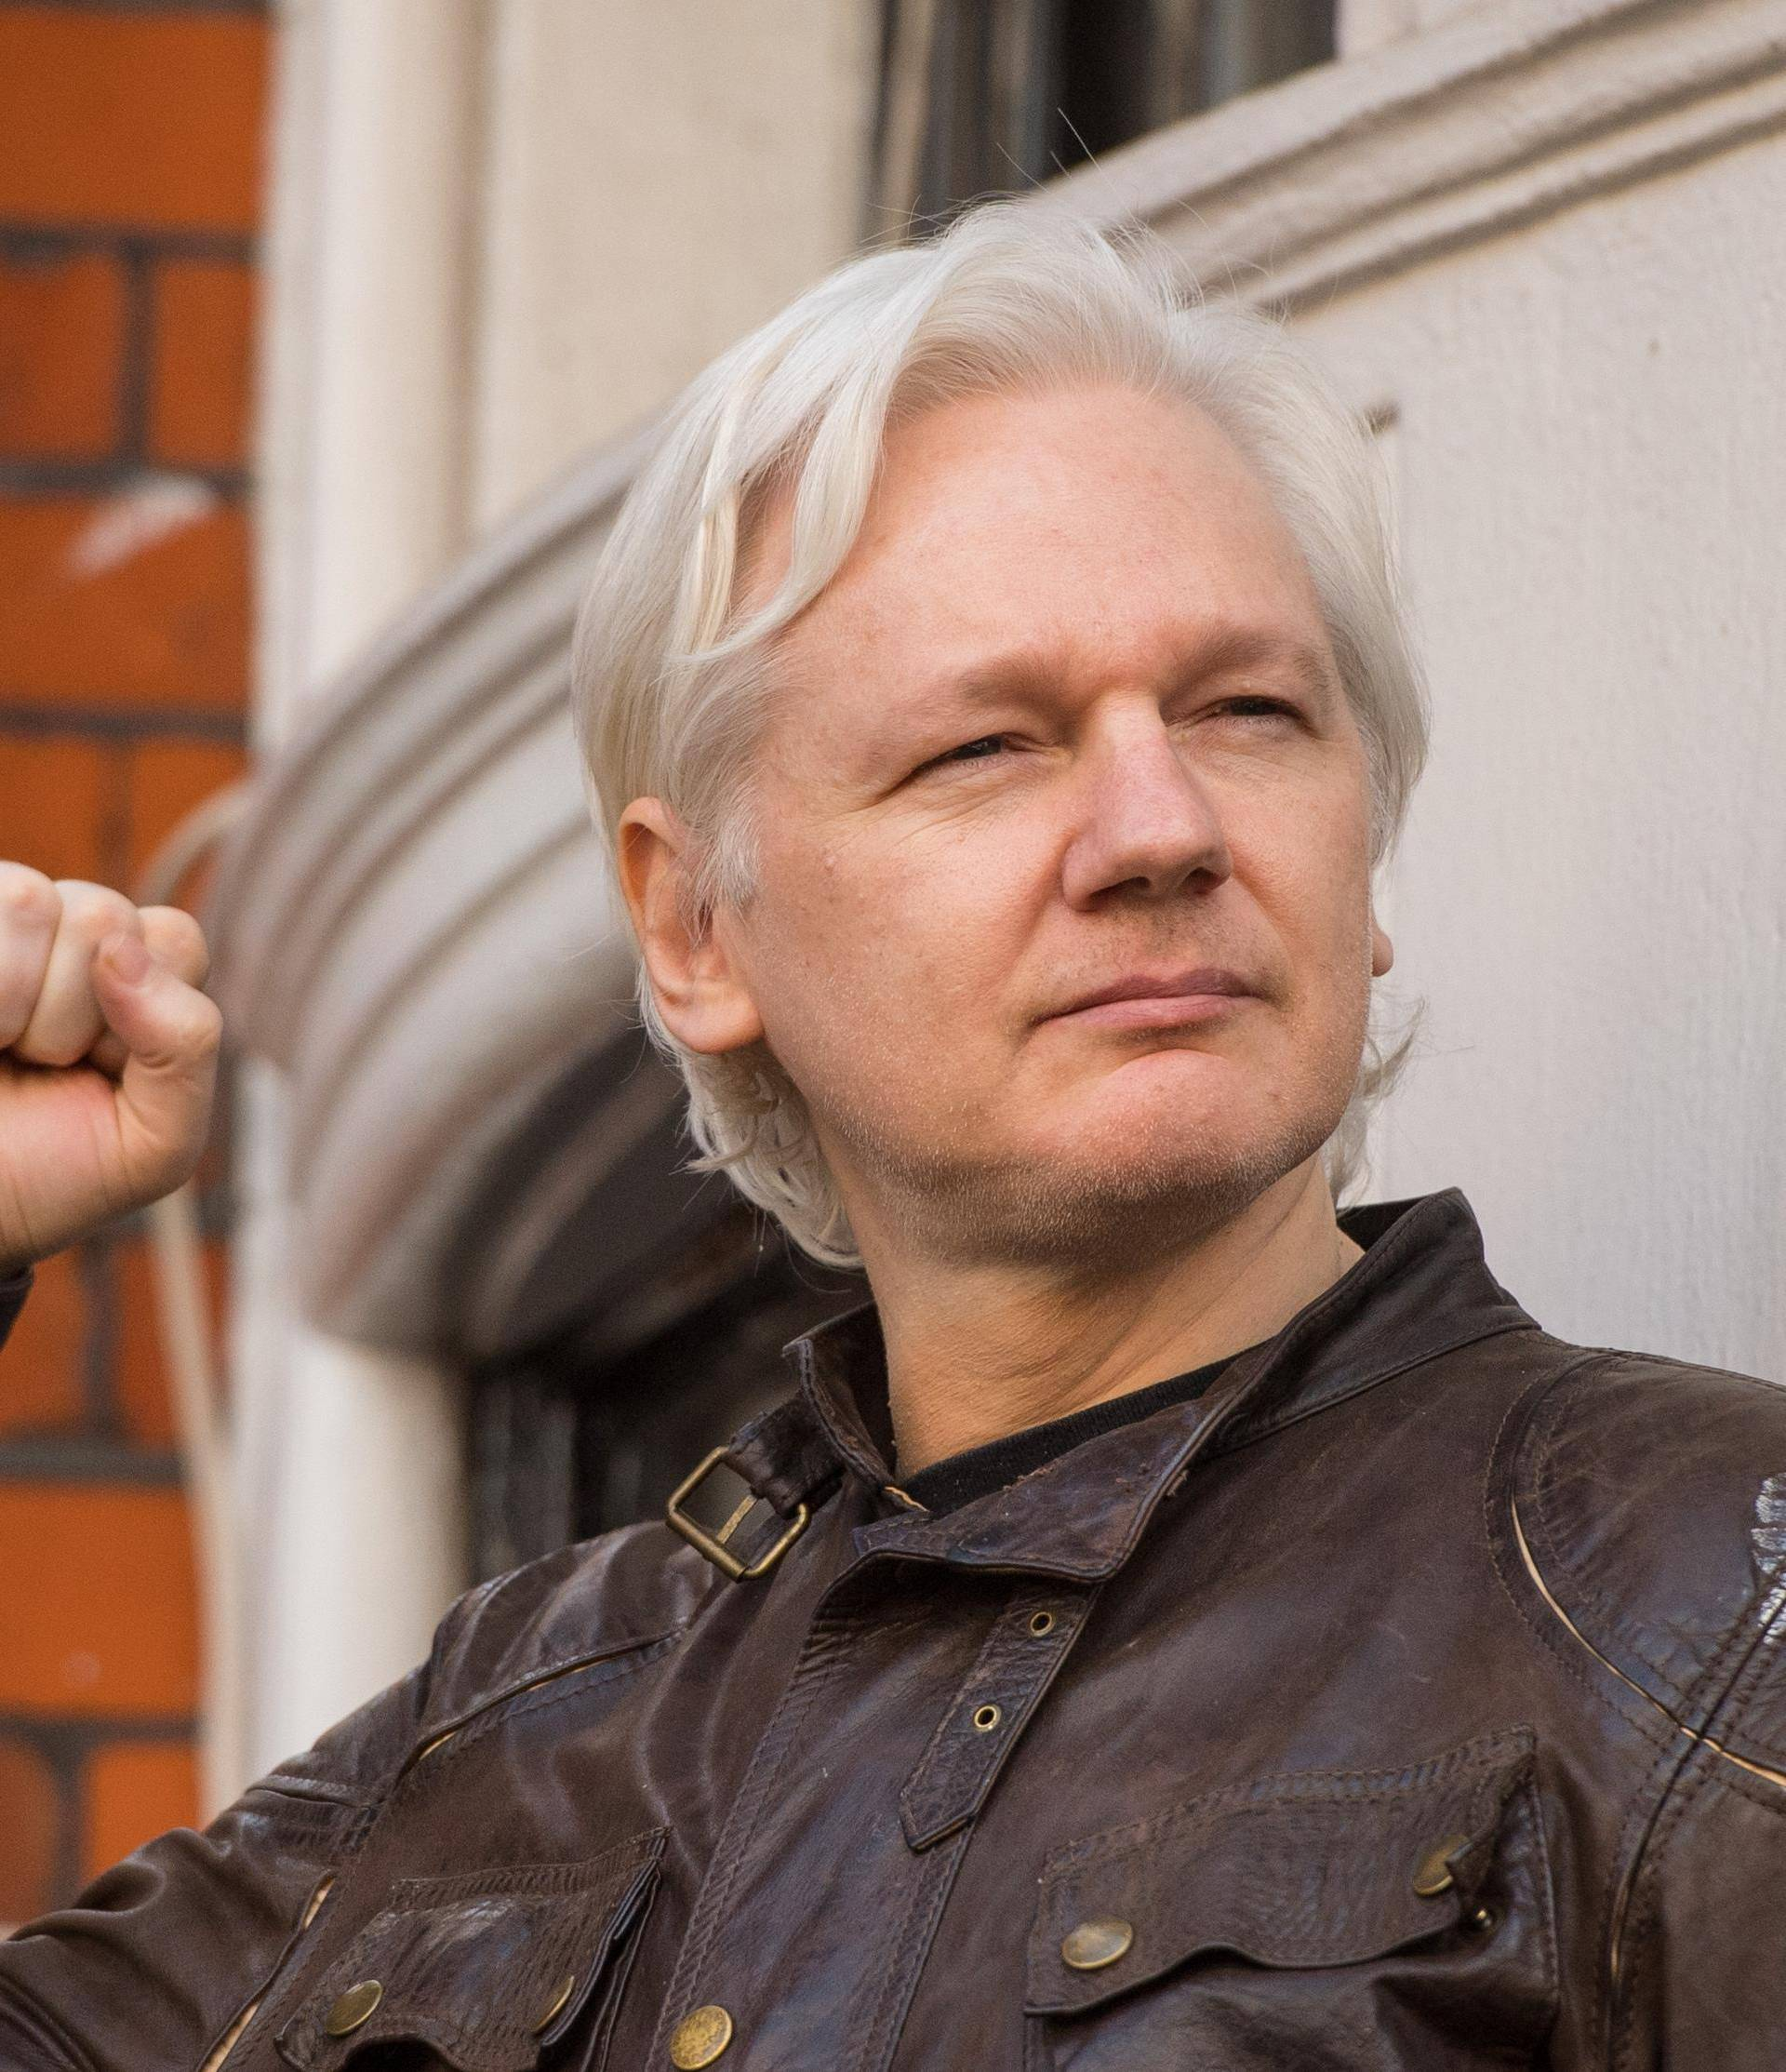 Julian Assange extradition